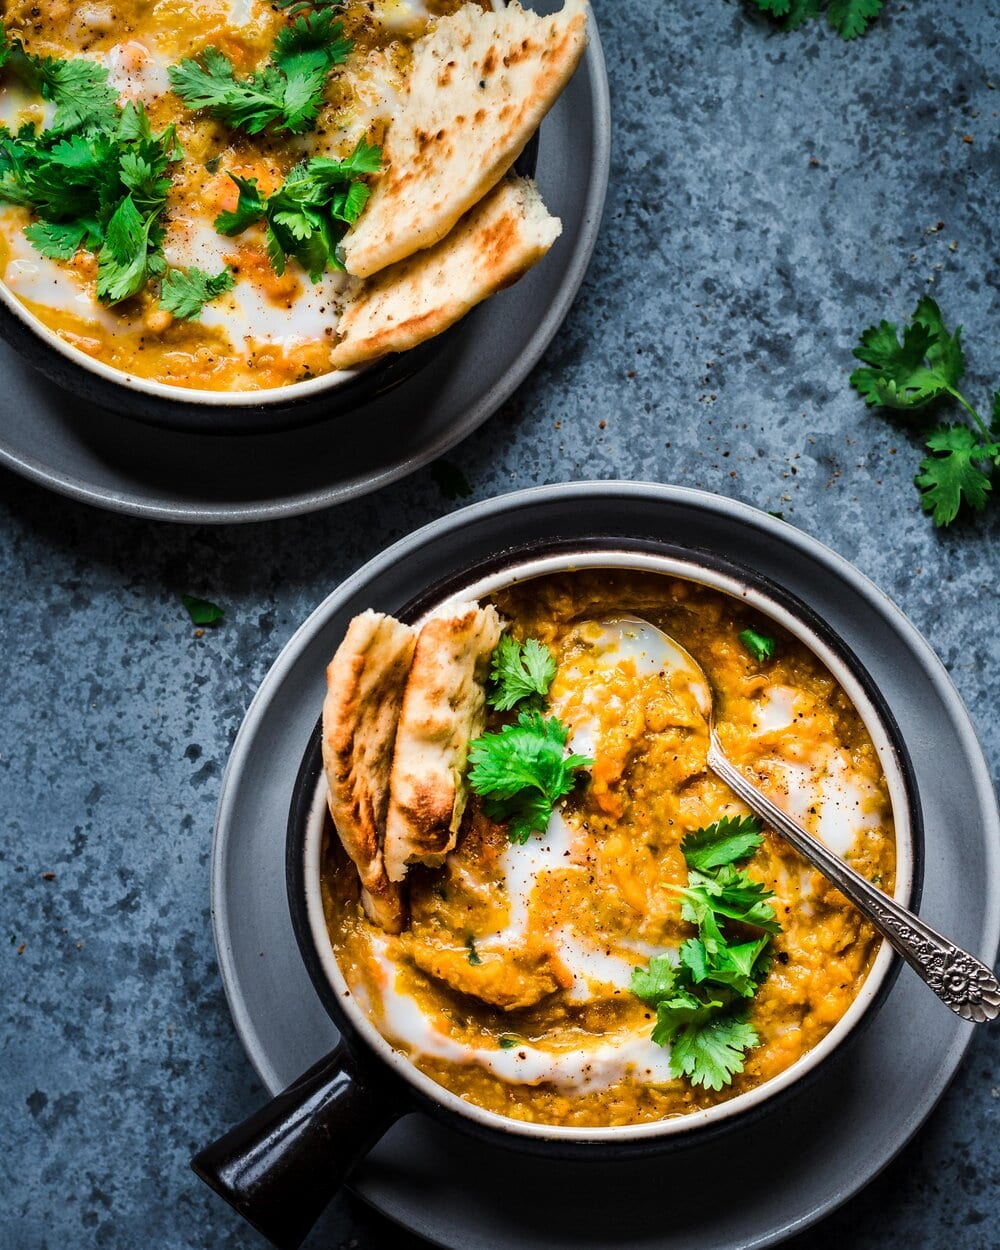 two bowls of Indian red lentil sweet potato soup with naan